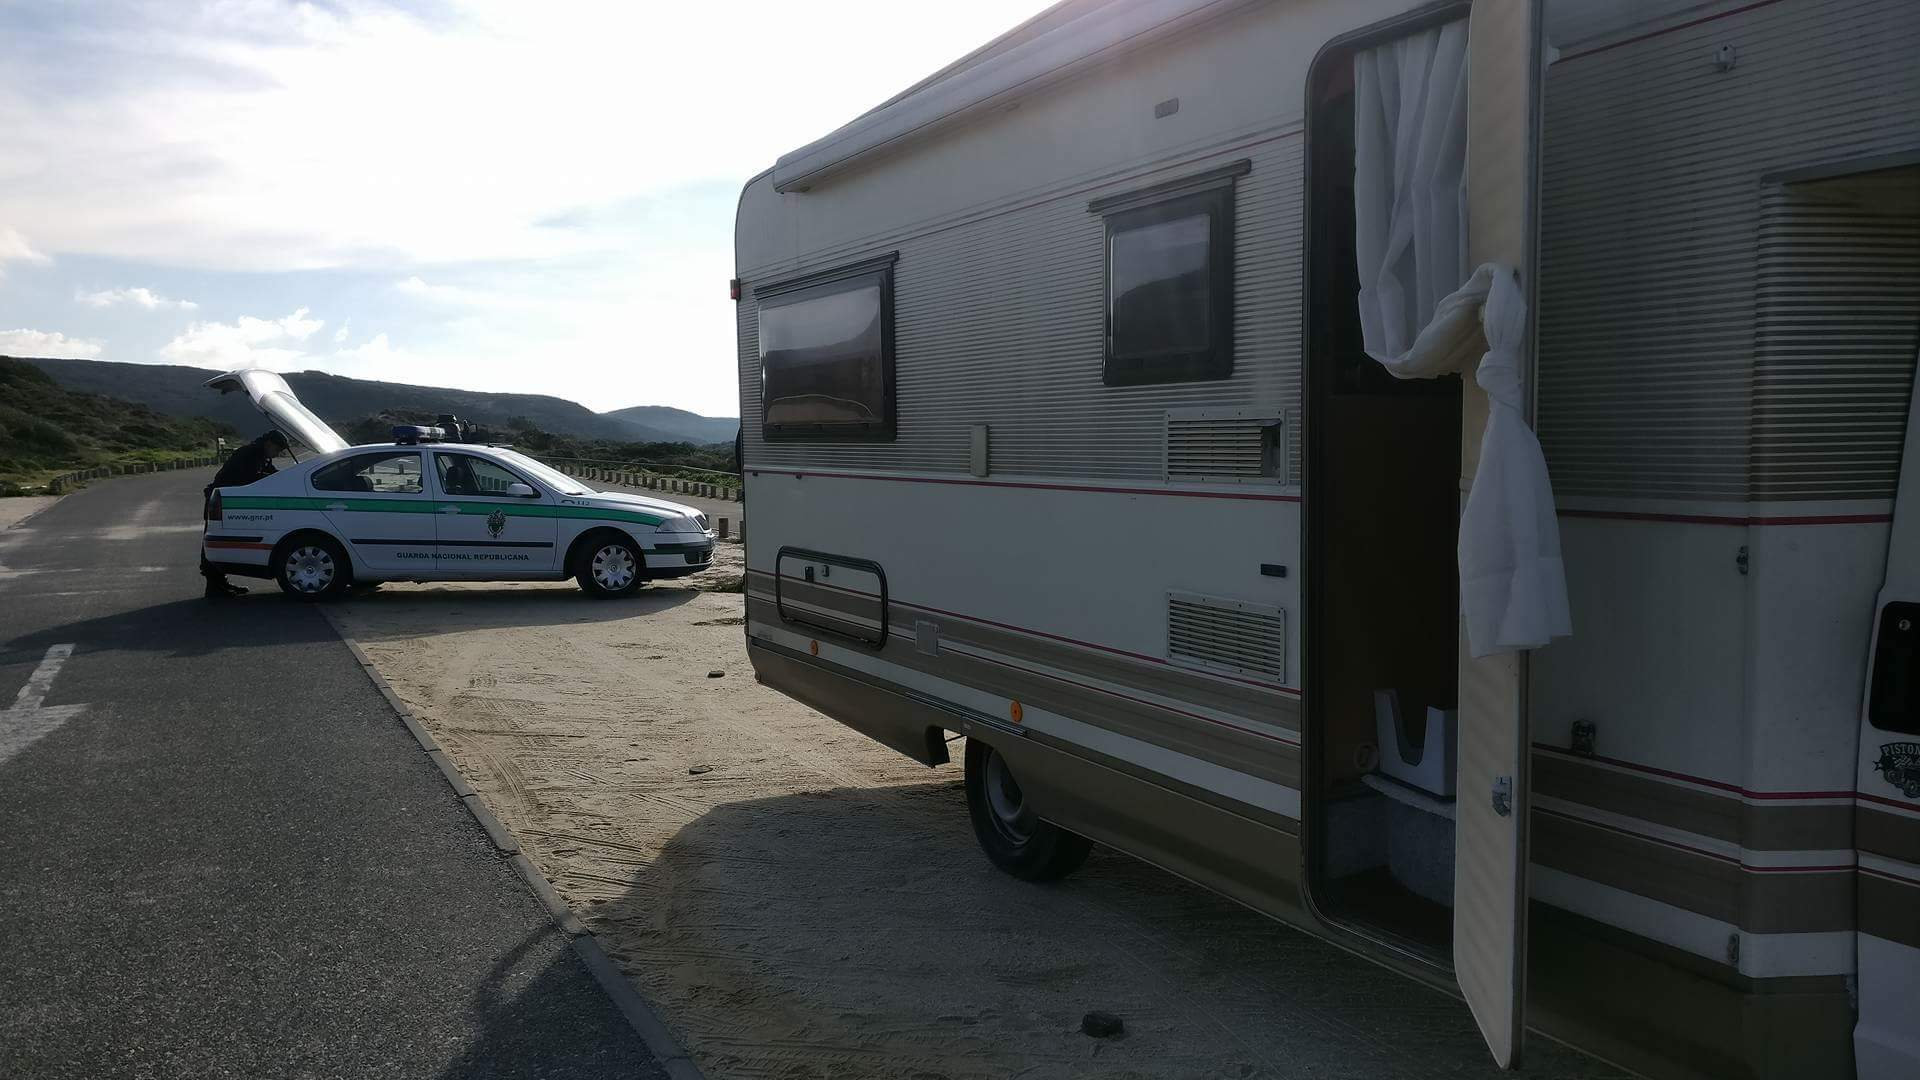 Portugal police ticket no camping